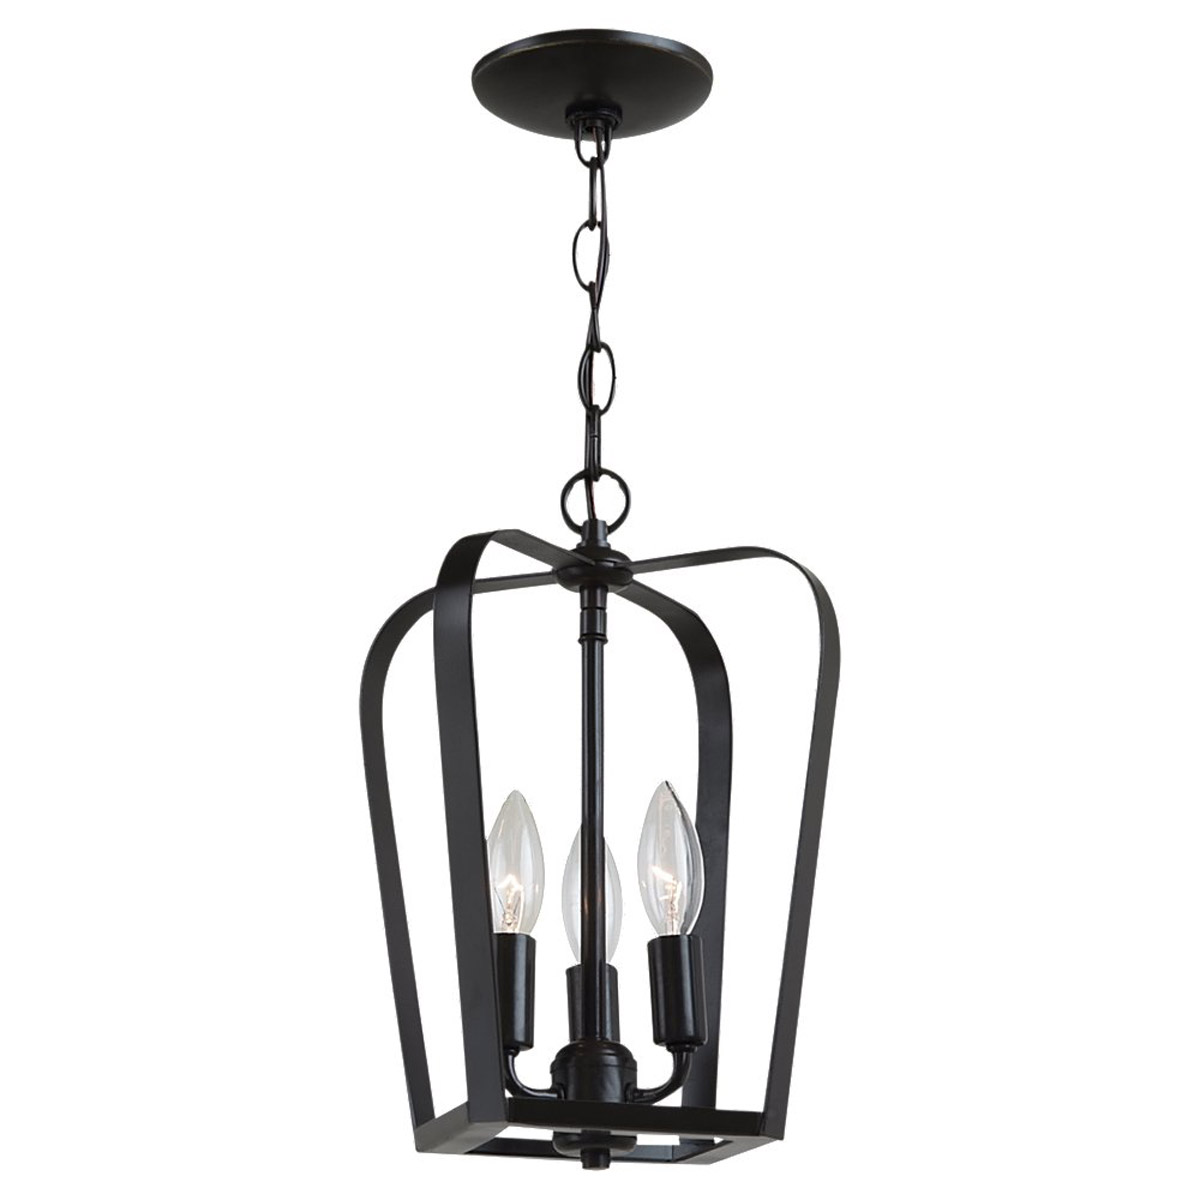 Sea Gull Lighting Windgate 3 Light Foyer Pendant in Heirloom Bronze 54940-782